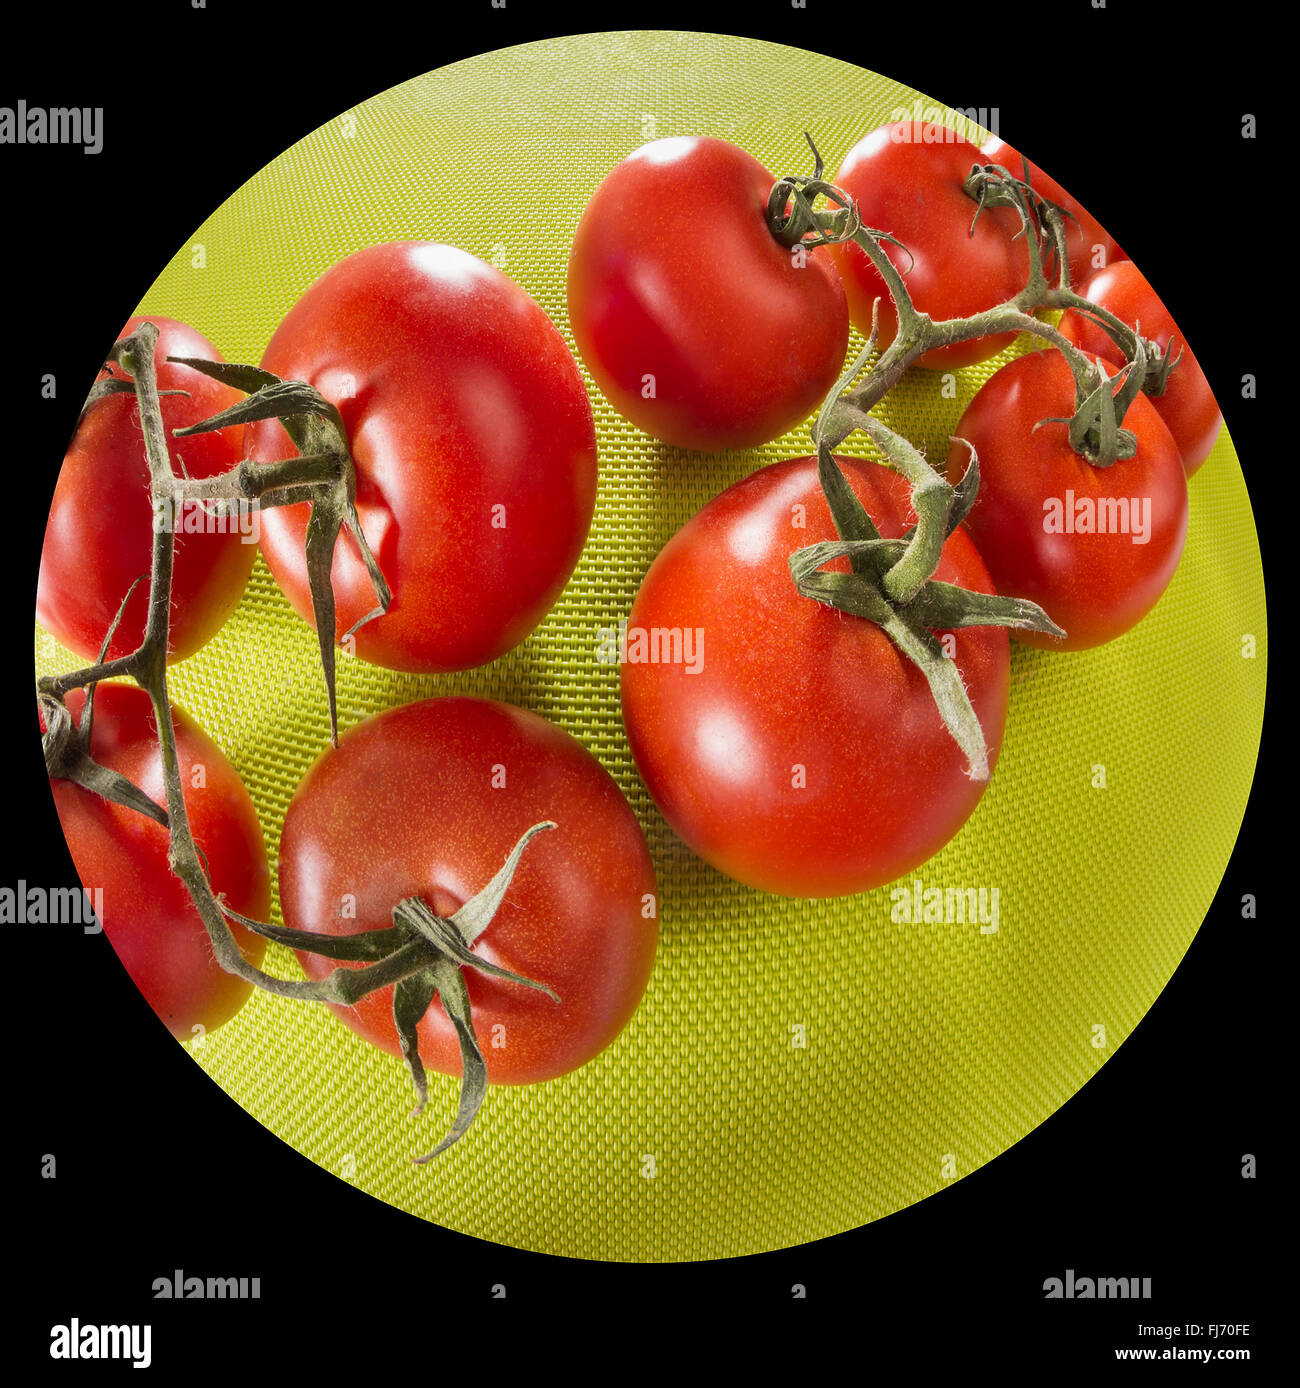 Tomatoes on a green background, fisheye lens, wide angle lens distortion far, huge round red green, glossy, fresh - Stock Image